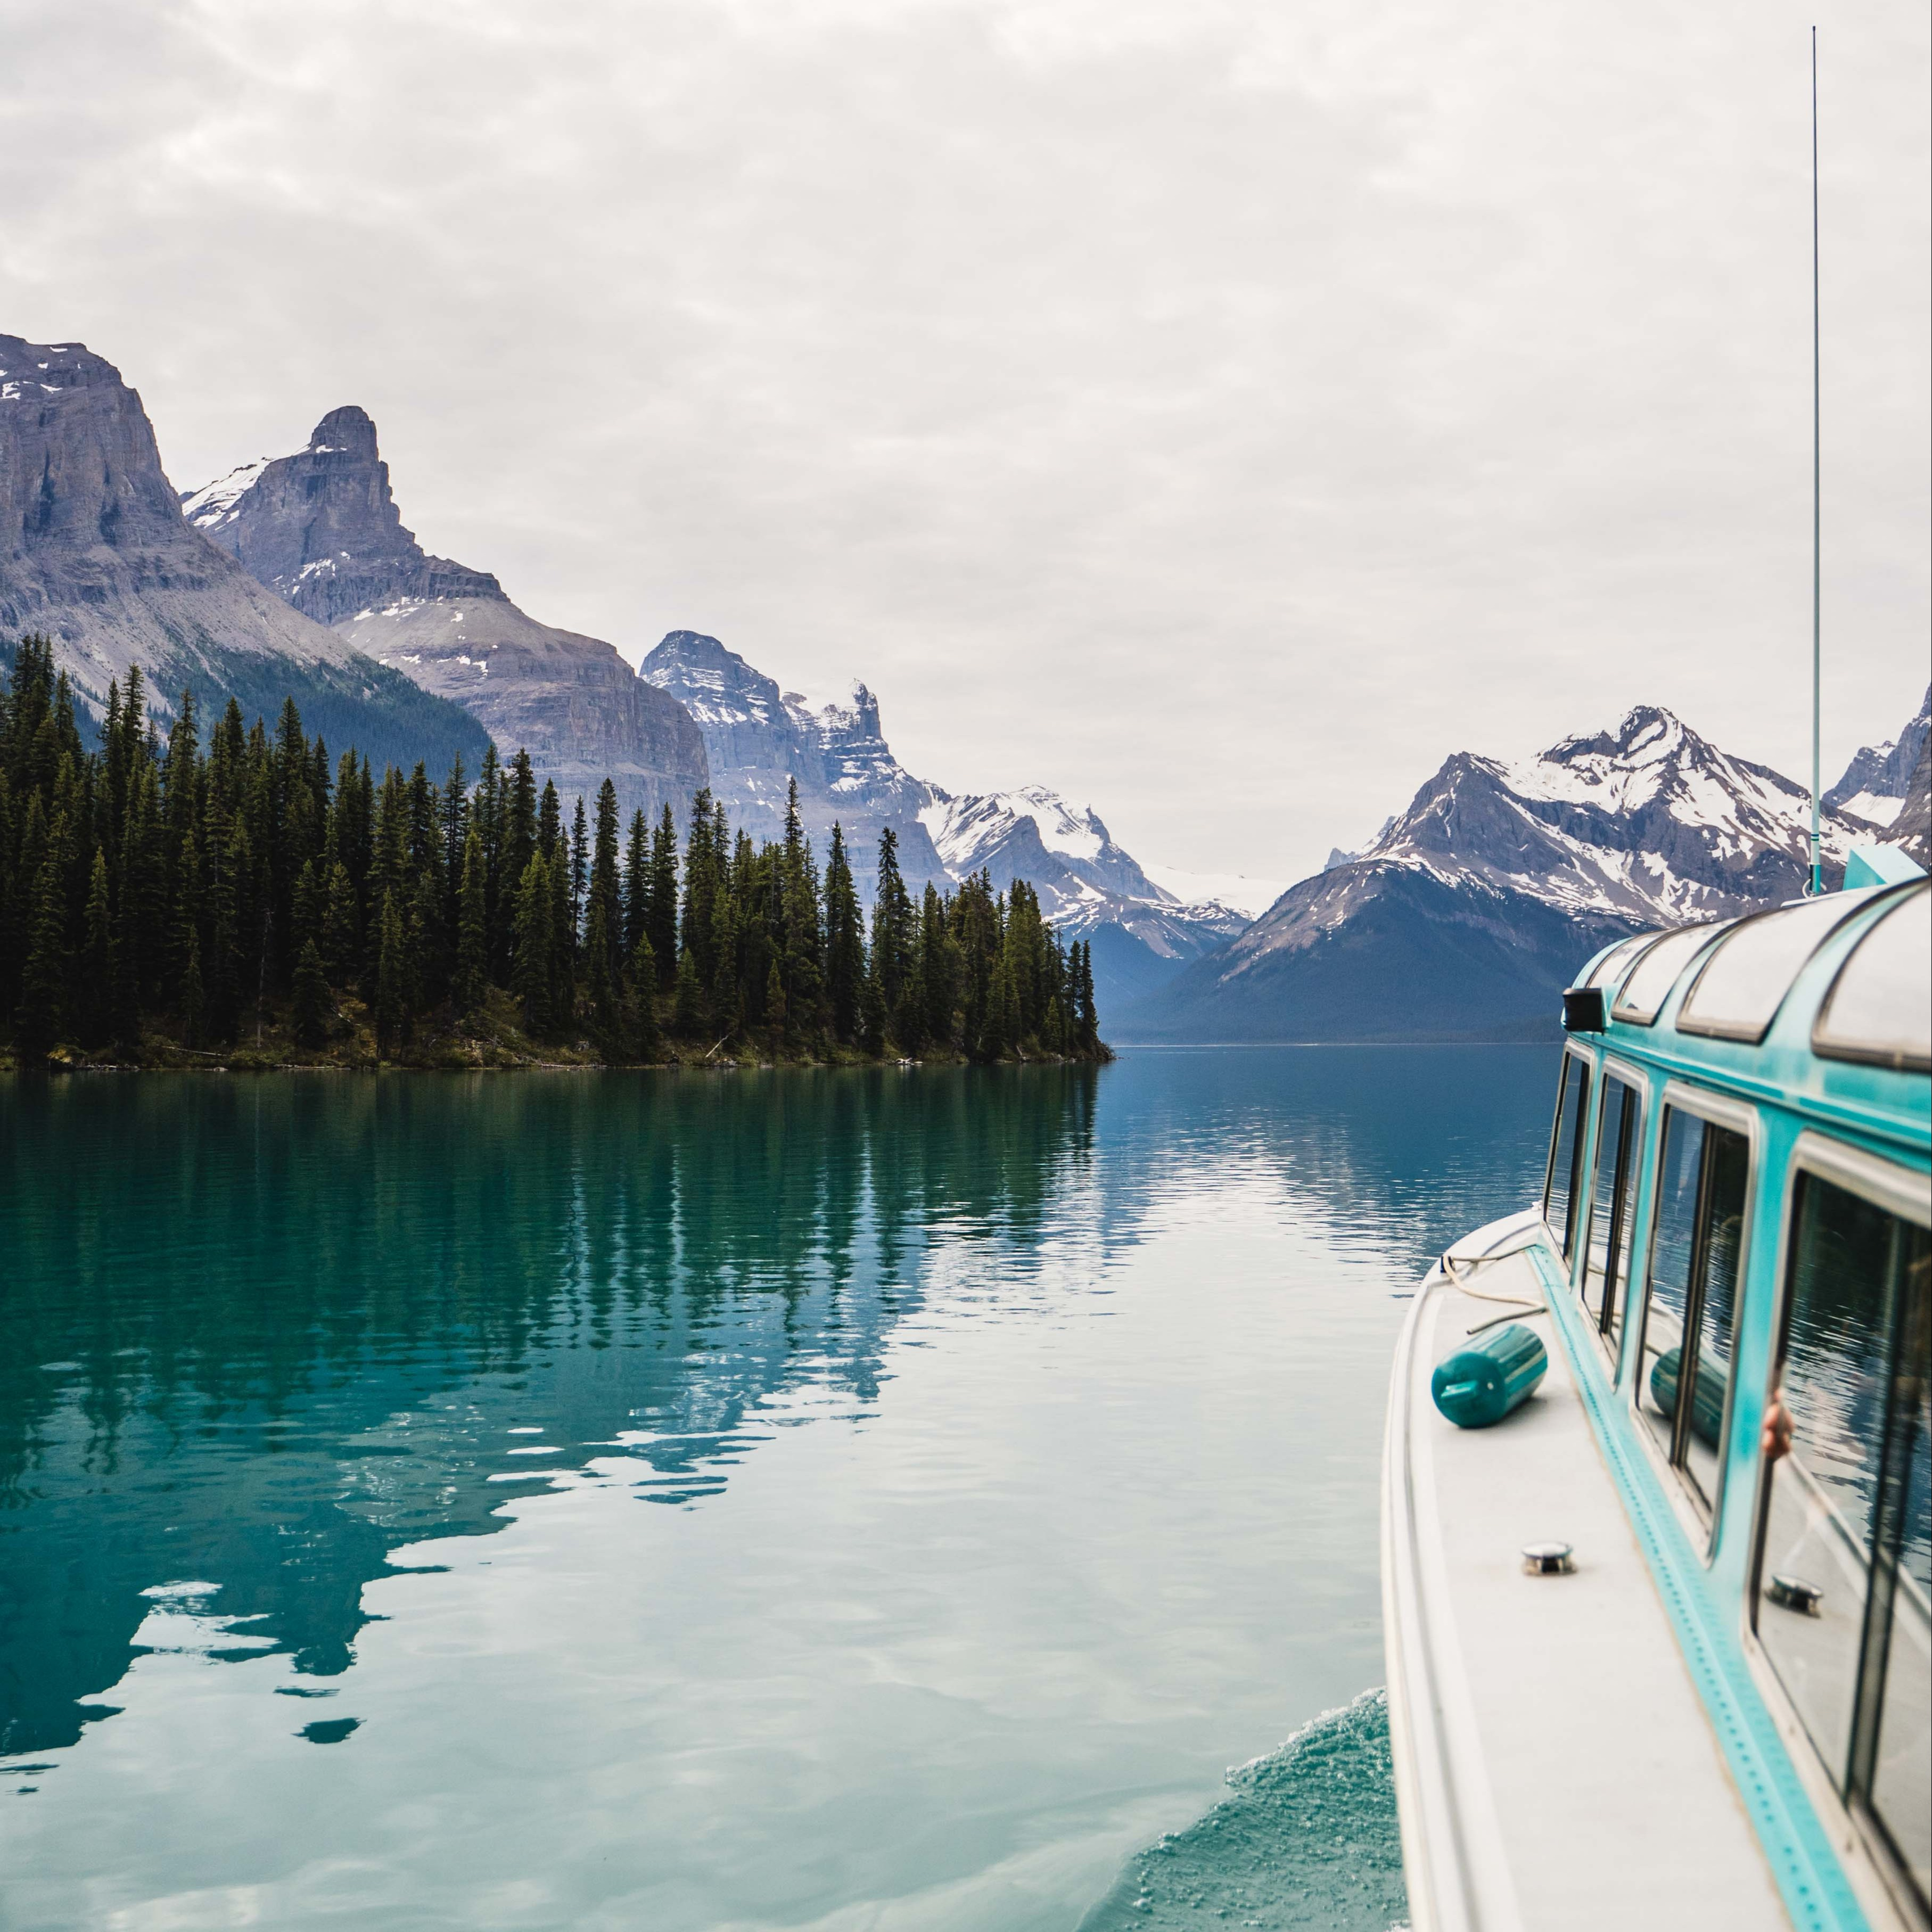 Swoop | a picture of the Maligne Lake boat tours in the Canadian Rockies, 3.5 hour drive away from Edmonton